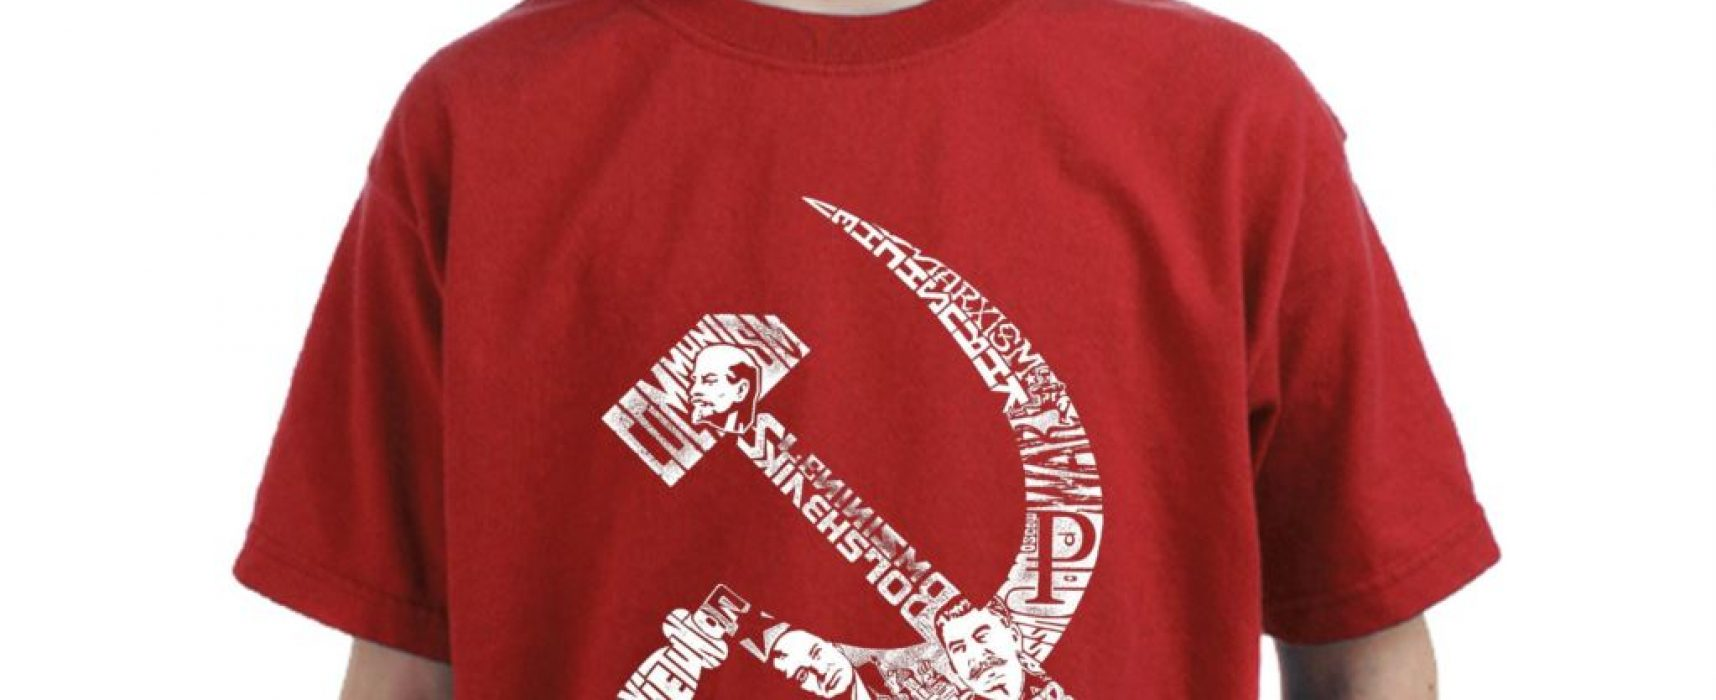 Lithuania Asks Walmart To Stop Selling Clothing With Soviet Symbols